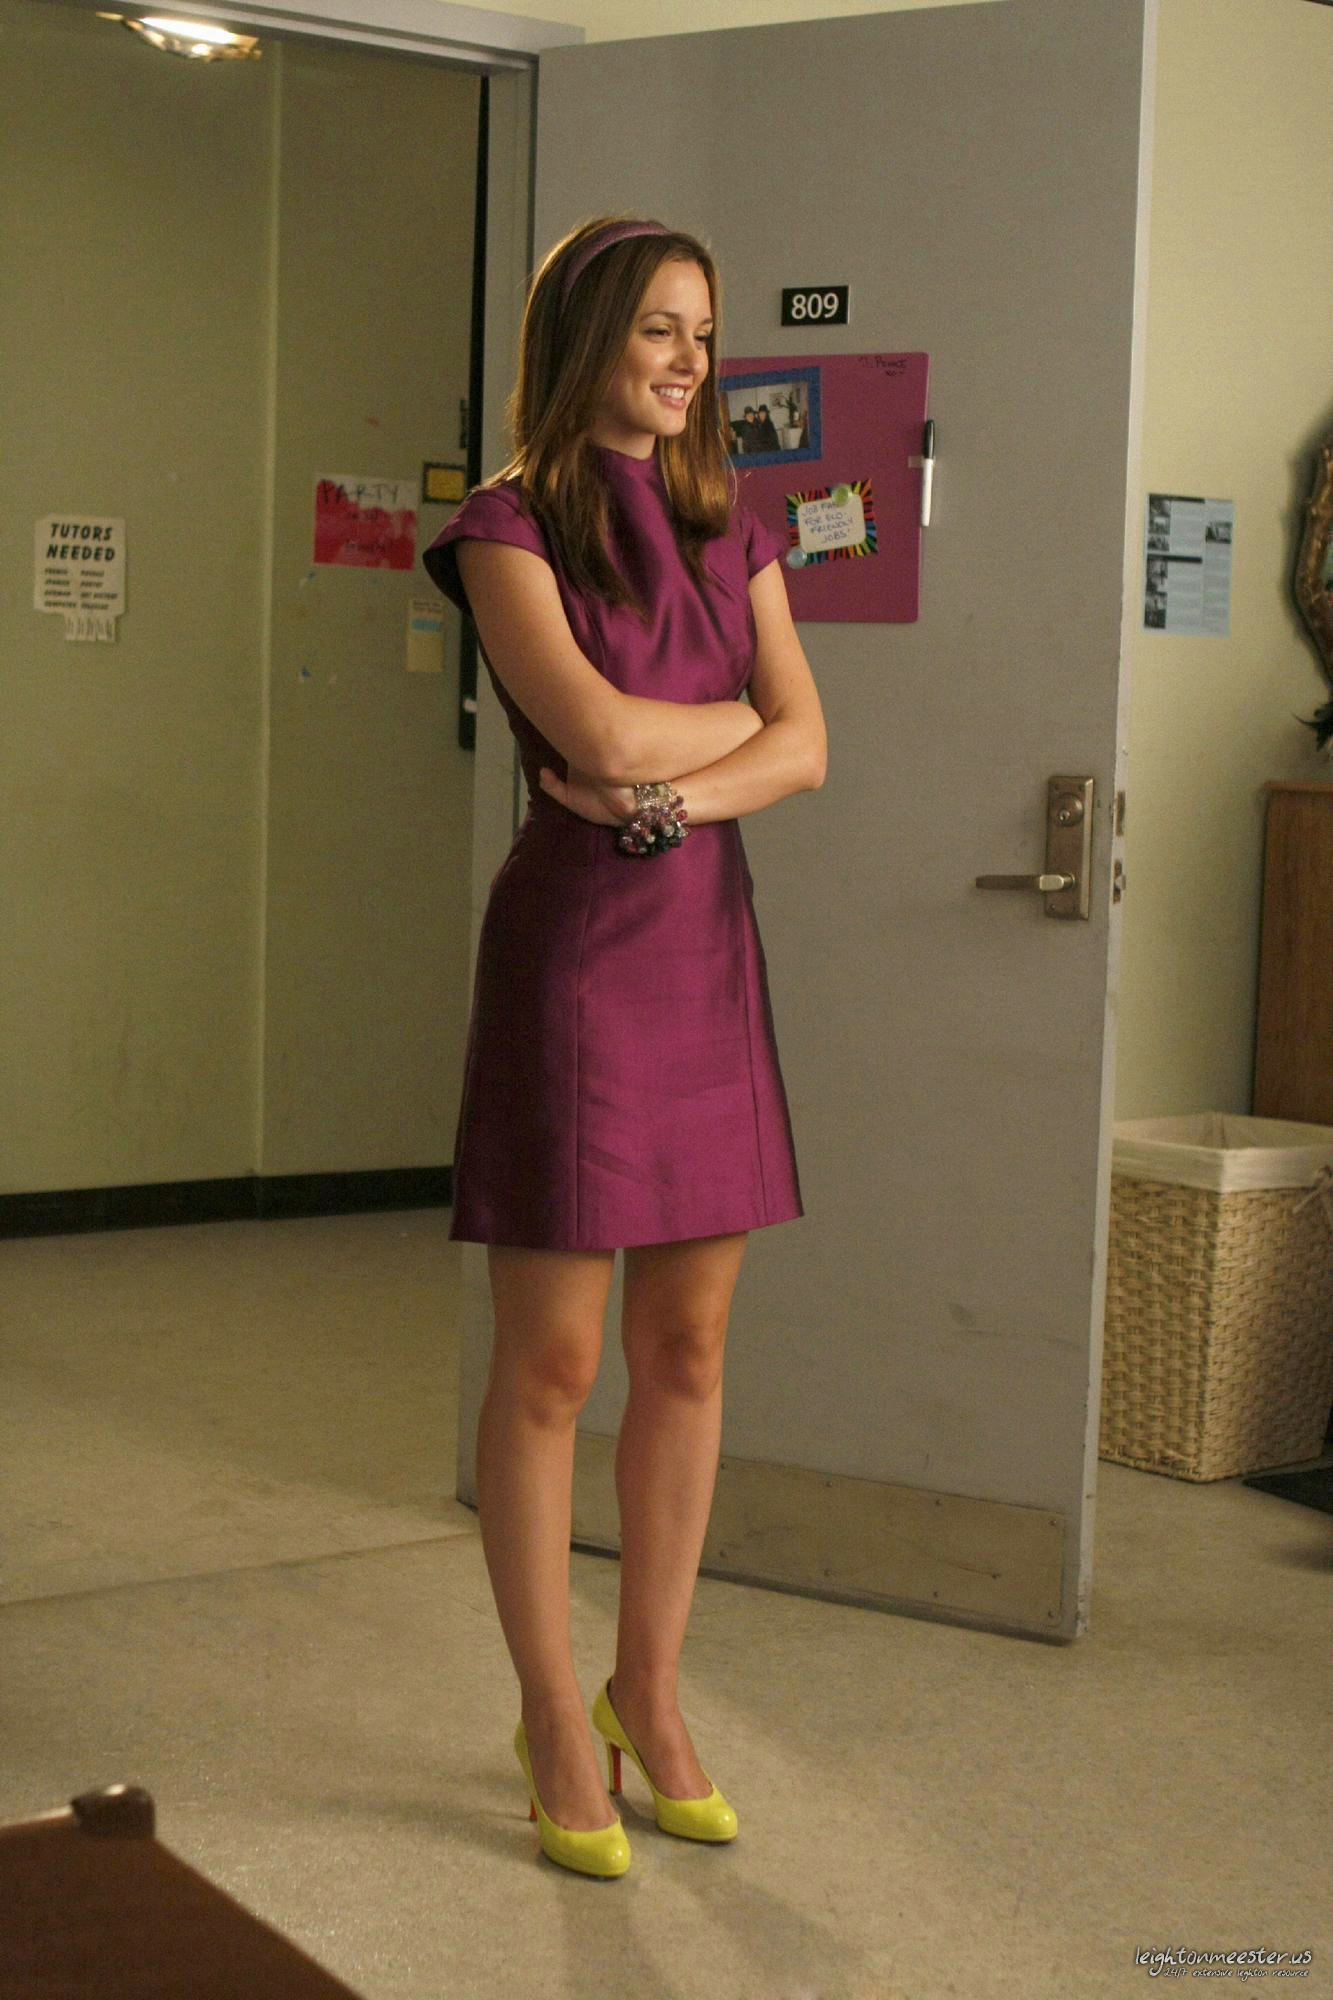 Blair 39 S Style Season 3 Blair Waldorf Fashion Photo 12439810 Fanpop